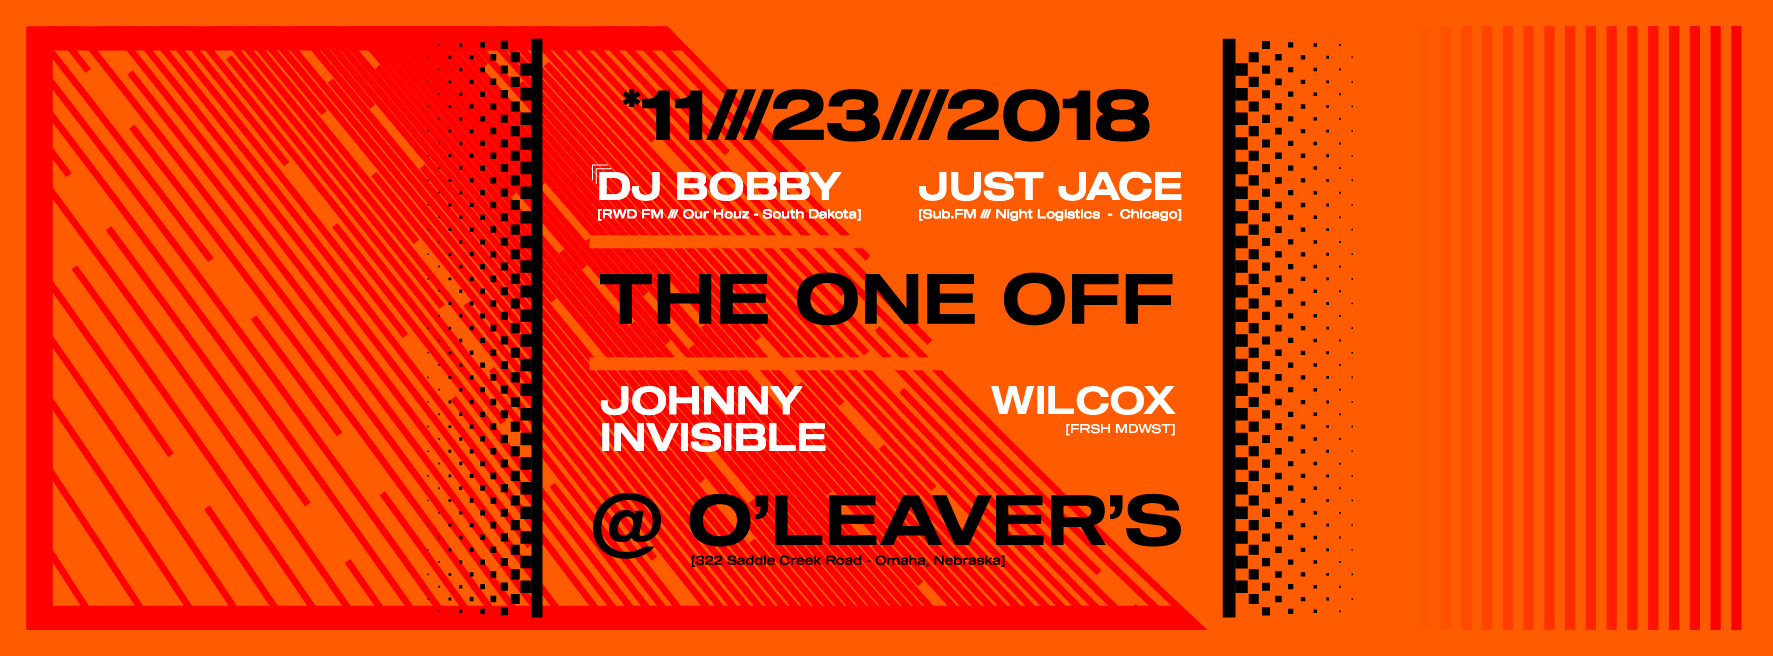 The One Off - DJ Bobby Just Jace Wilcox Johnny Invisible - Cover Photo-01.png